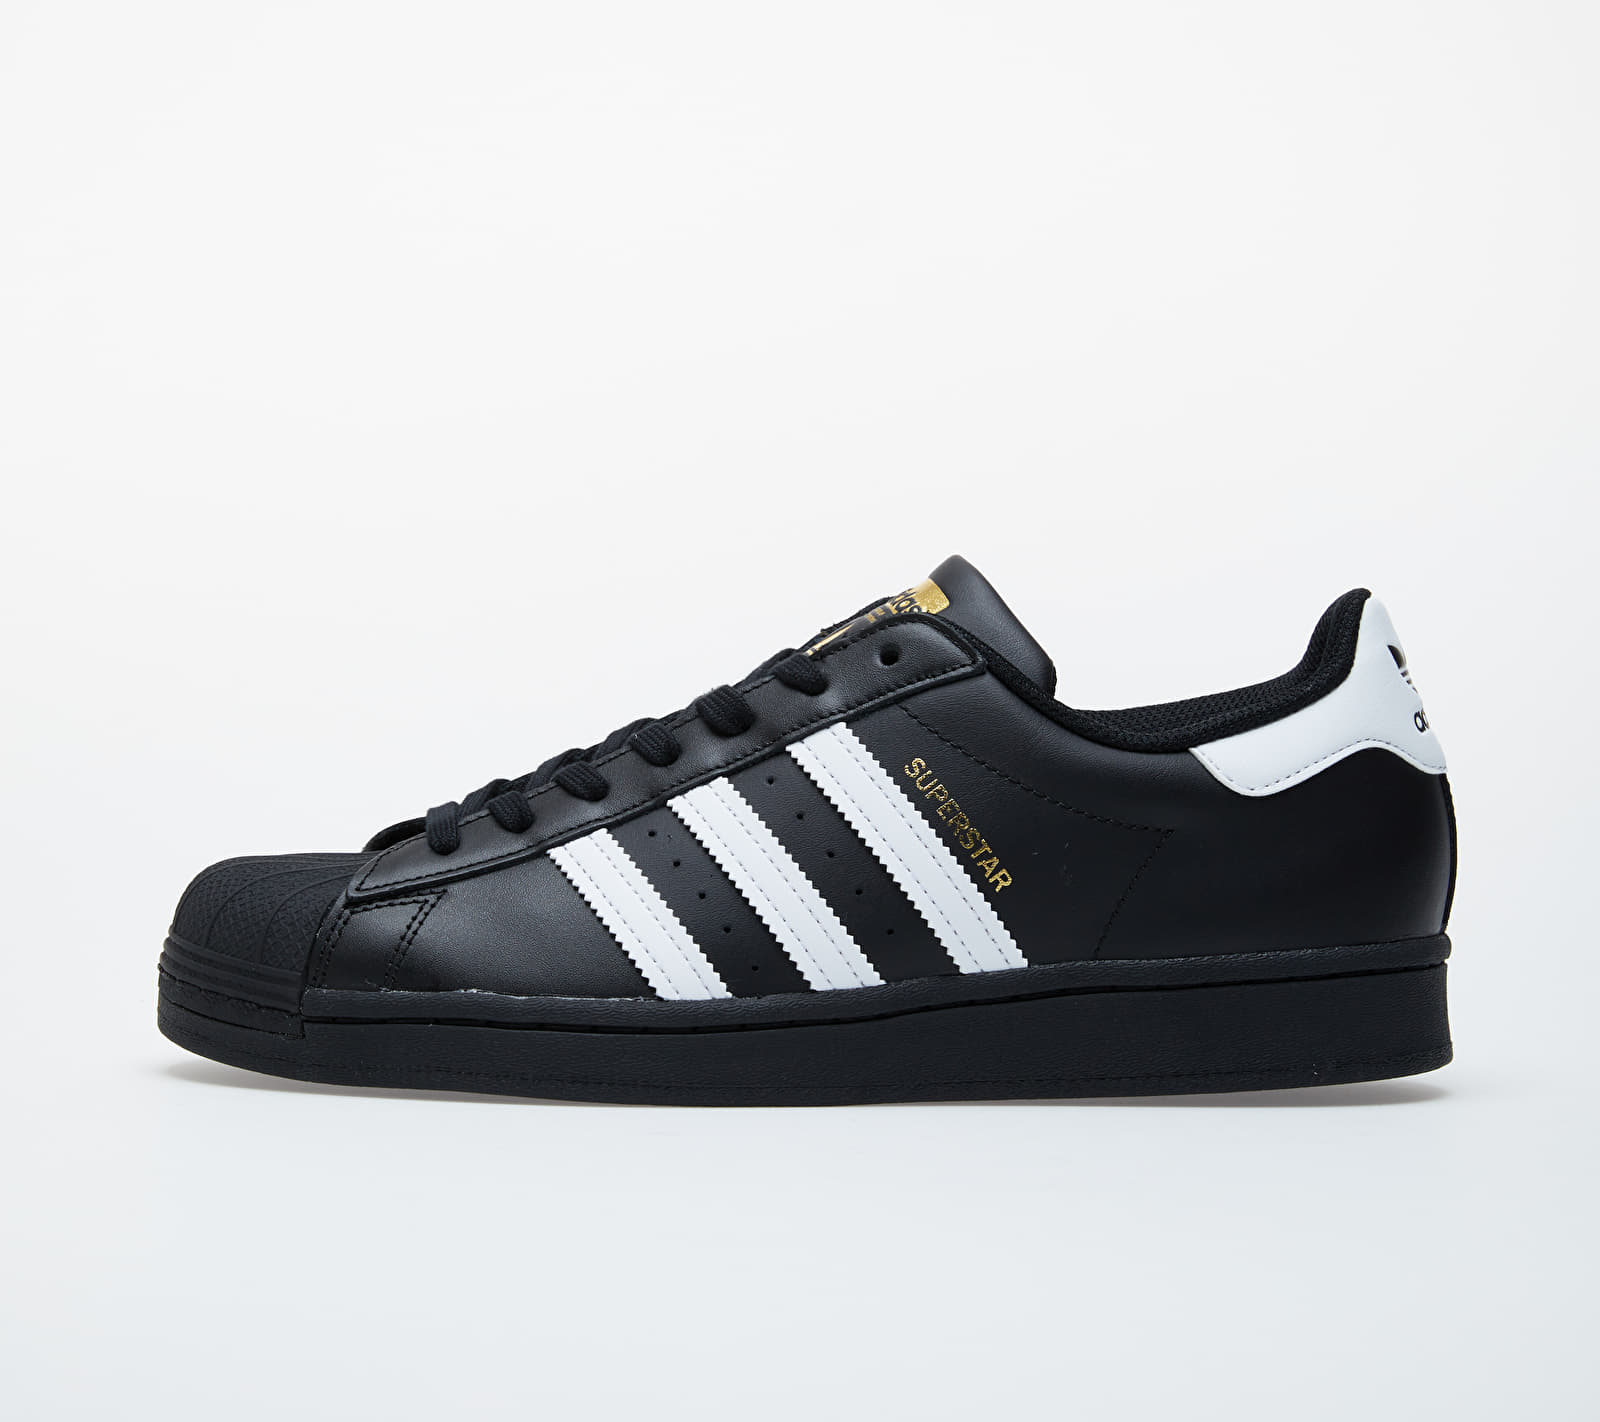 adidas Superstar Core Black/ Ftw White/ Core Black EUR 46